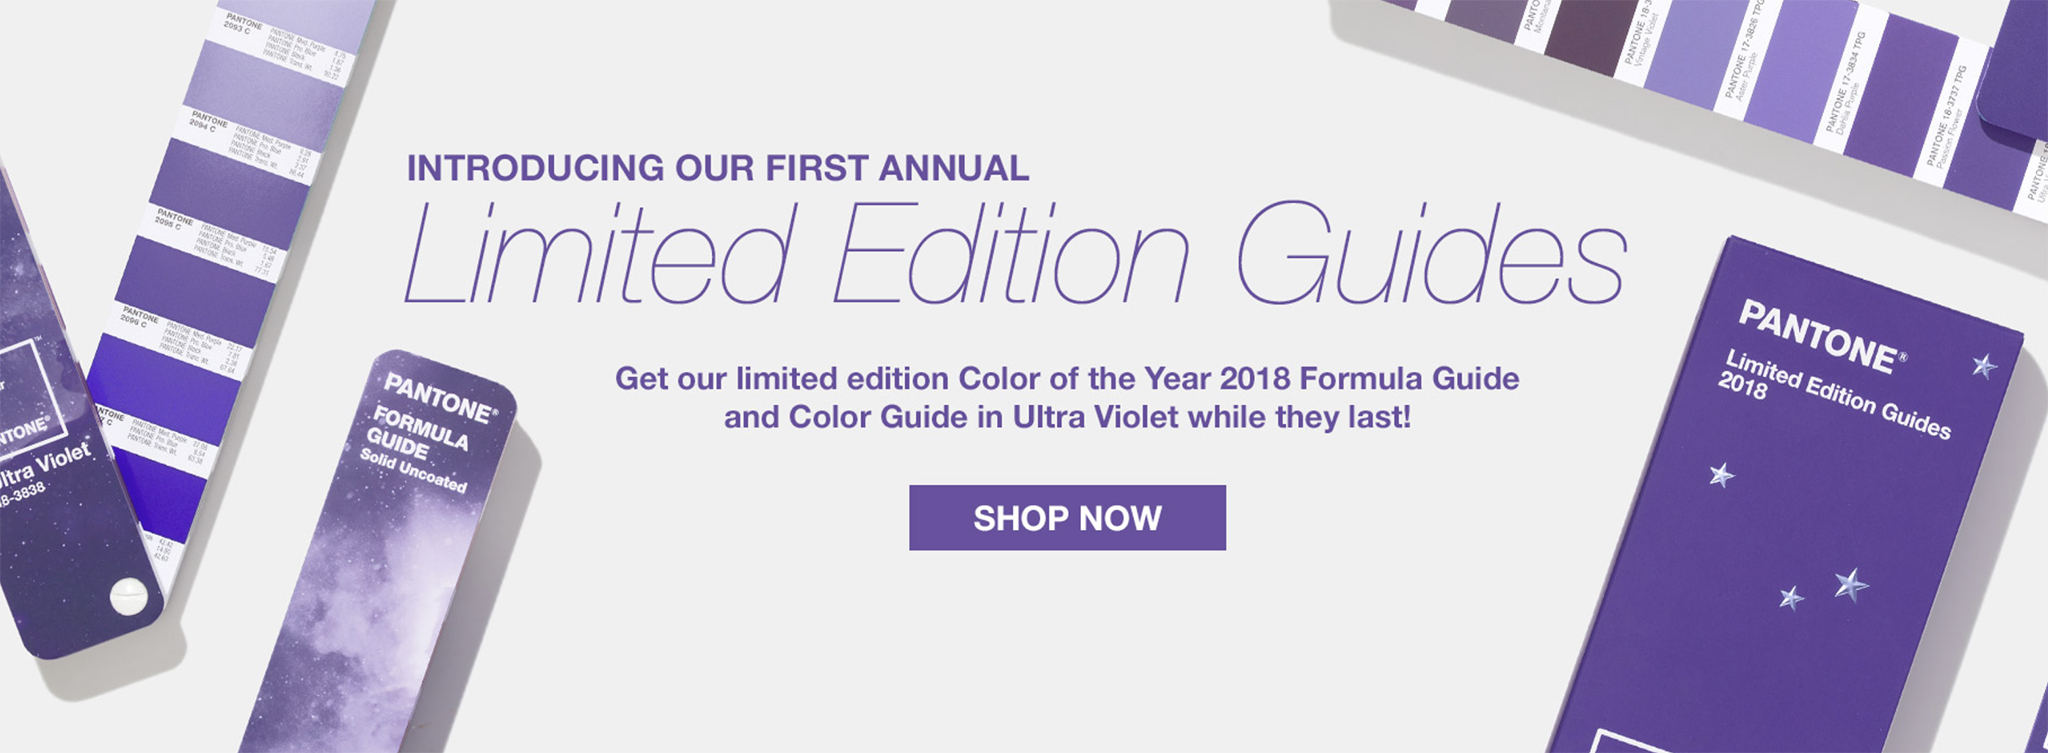 The Pantone Color Institute would like to sell consumers a limited edition guide which is the same as their existing guides except it is graced with the 2018 Color of the Year: 'Ultra Violet'. Whomever thought this up must also not know it's 'inaugural' rather than 'first annual'. | Image courtesy of Pantone under the Fair Use Doctrine.